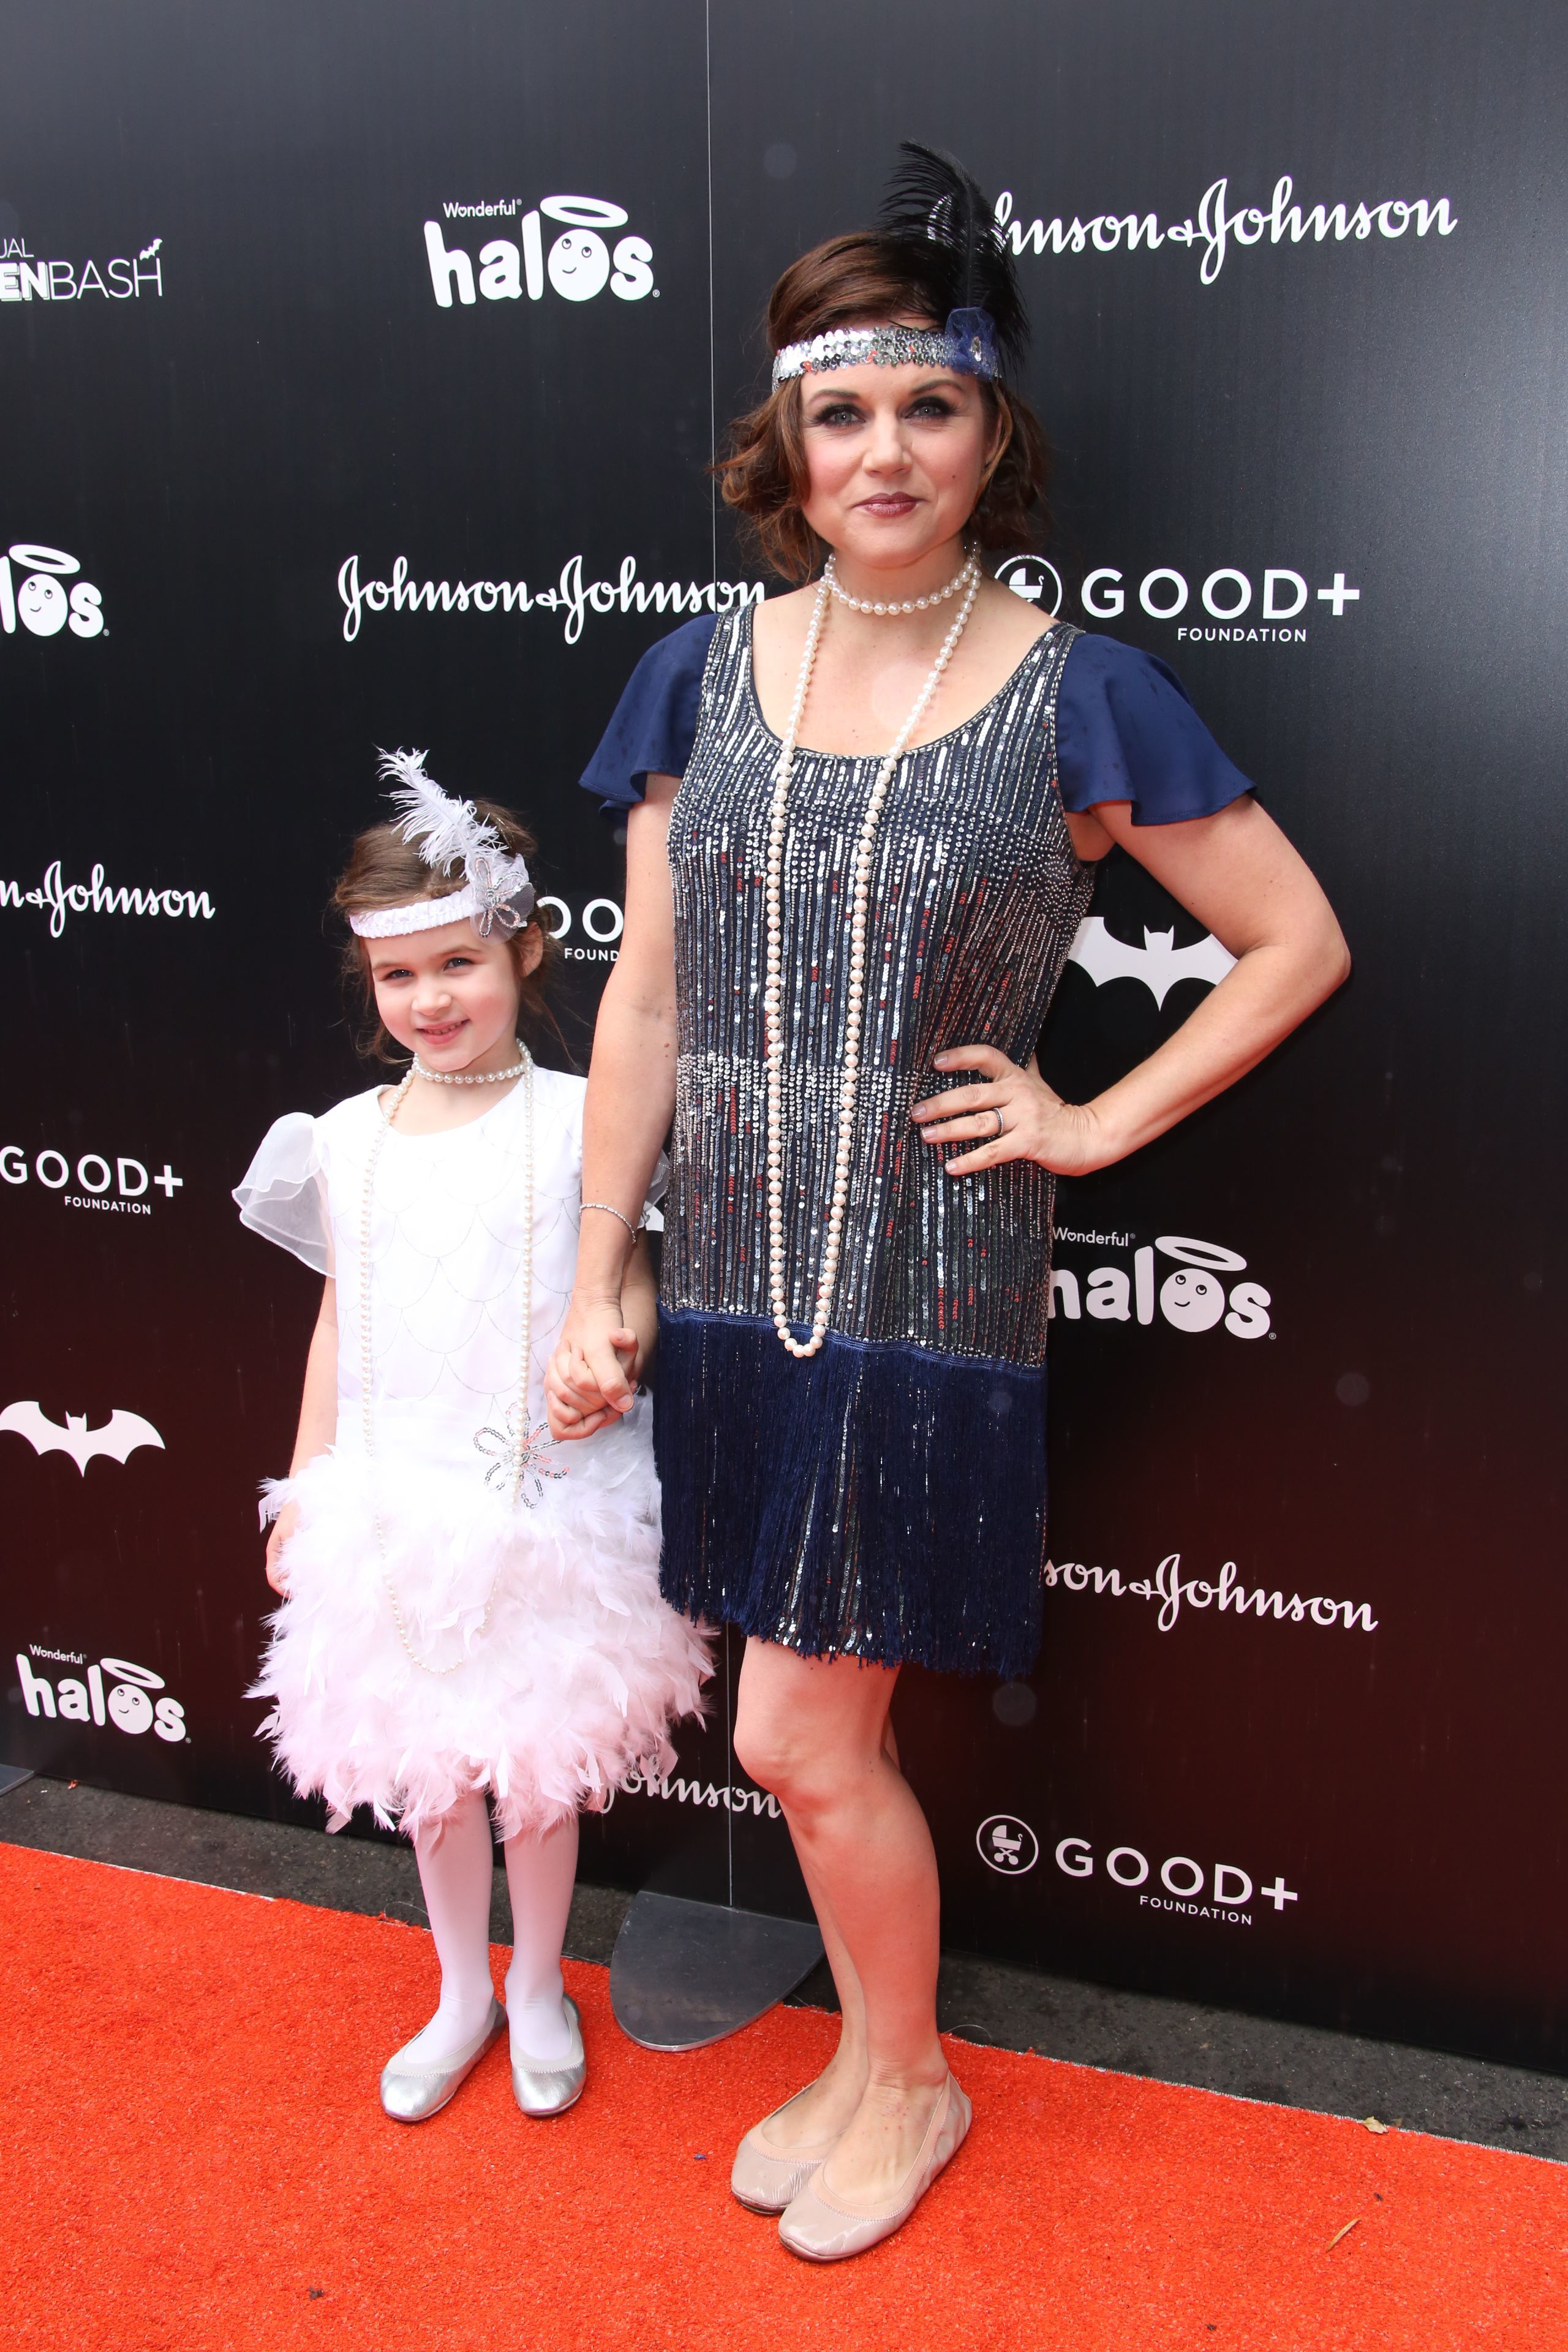 Tiffani Thiessen and her daughter, Harper Smith, attend the GOOD+ Foundation Halloween Bash in Los Angeles on Oct. 30, 2016.